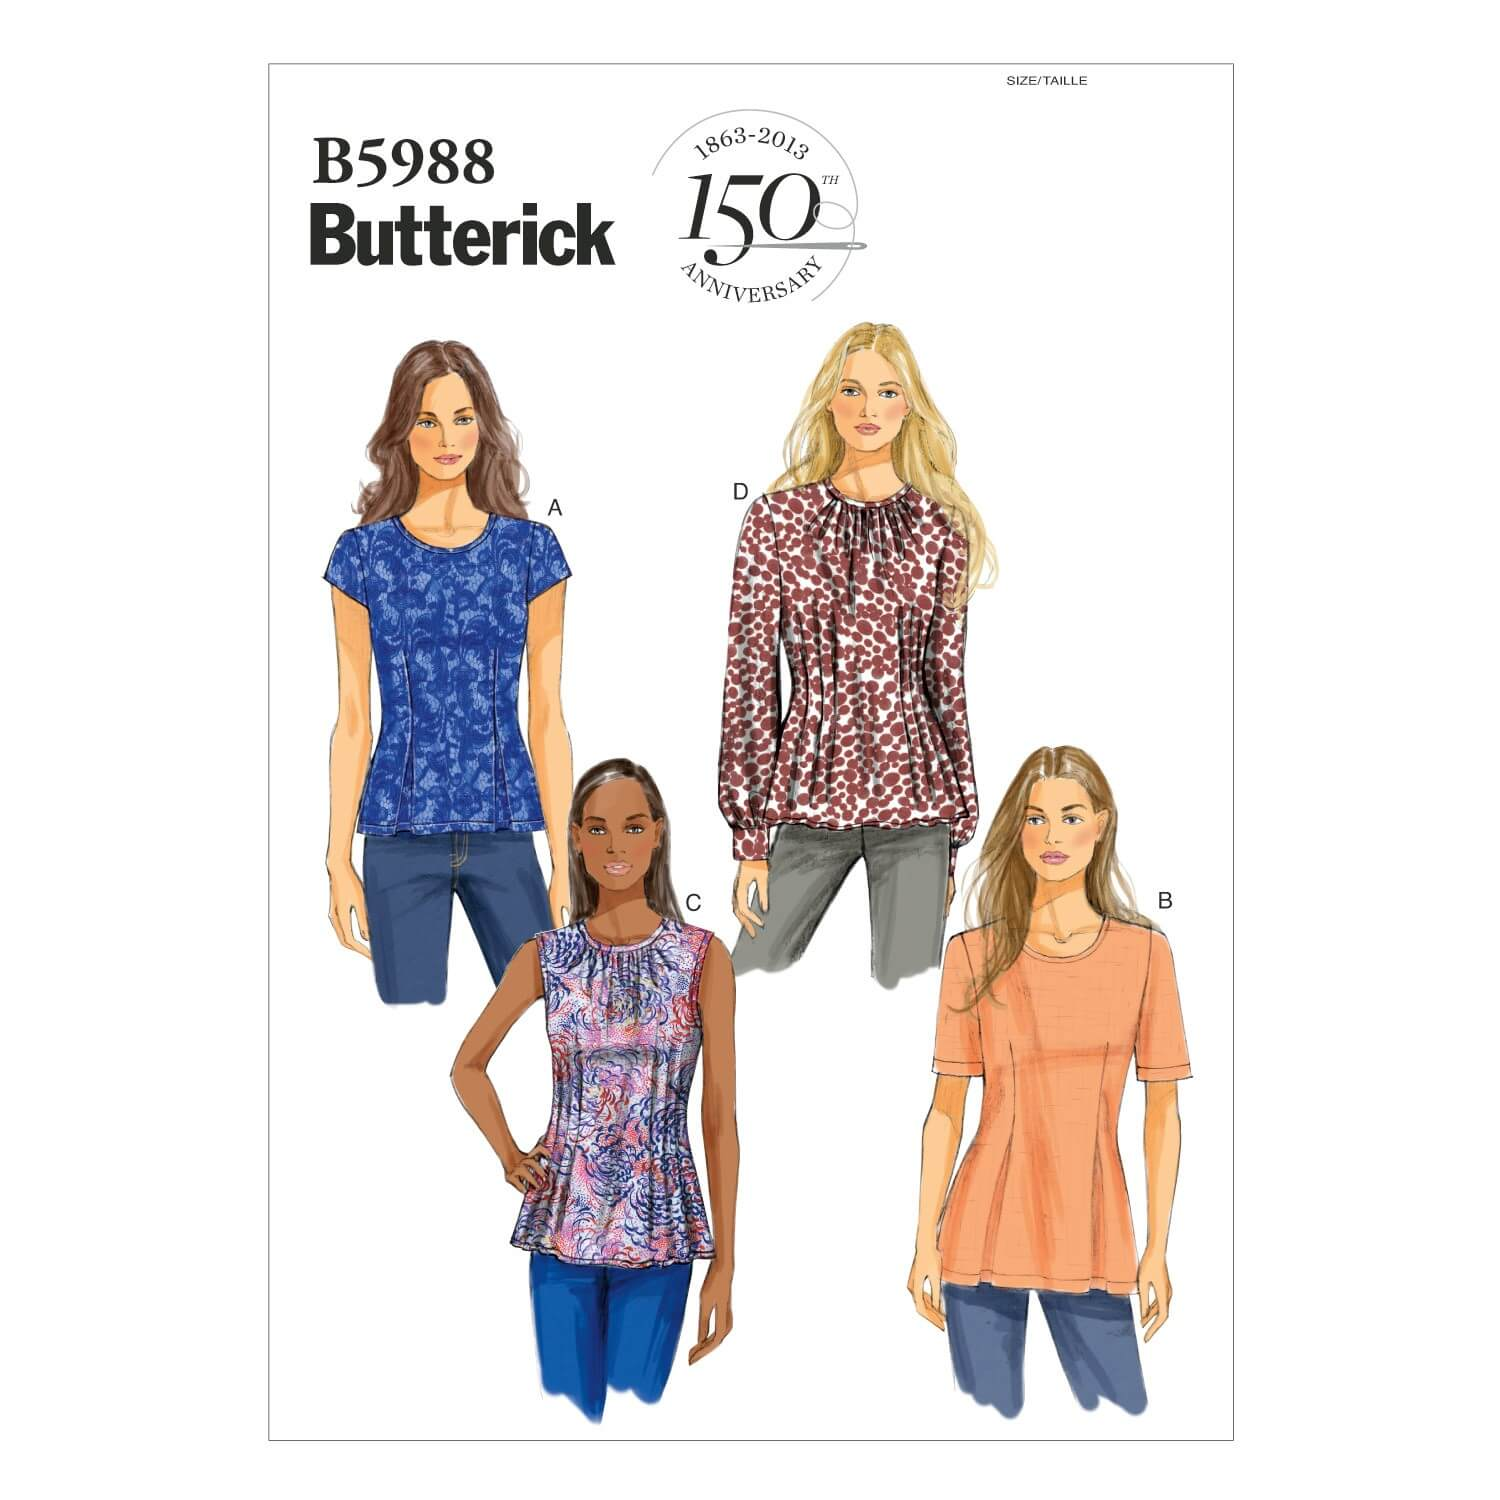 Butterick Sewing Pattern 5988 Women's Petite Tops